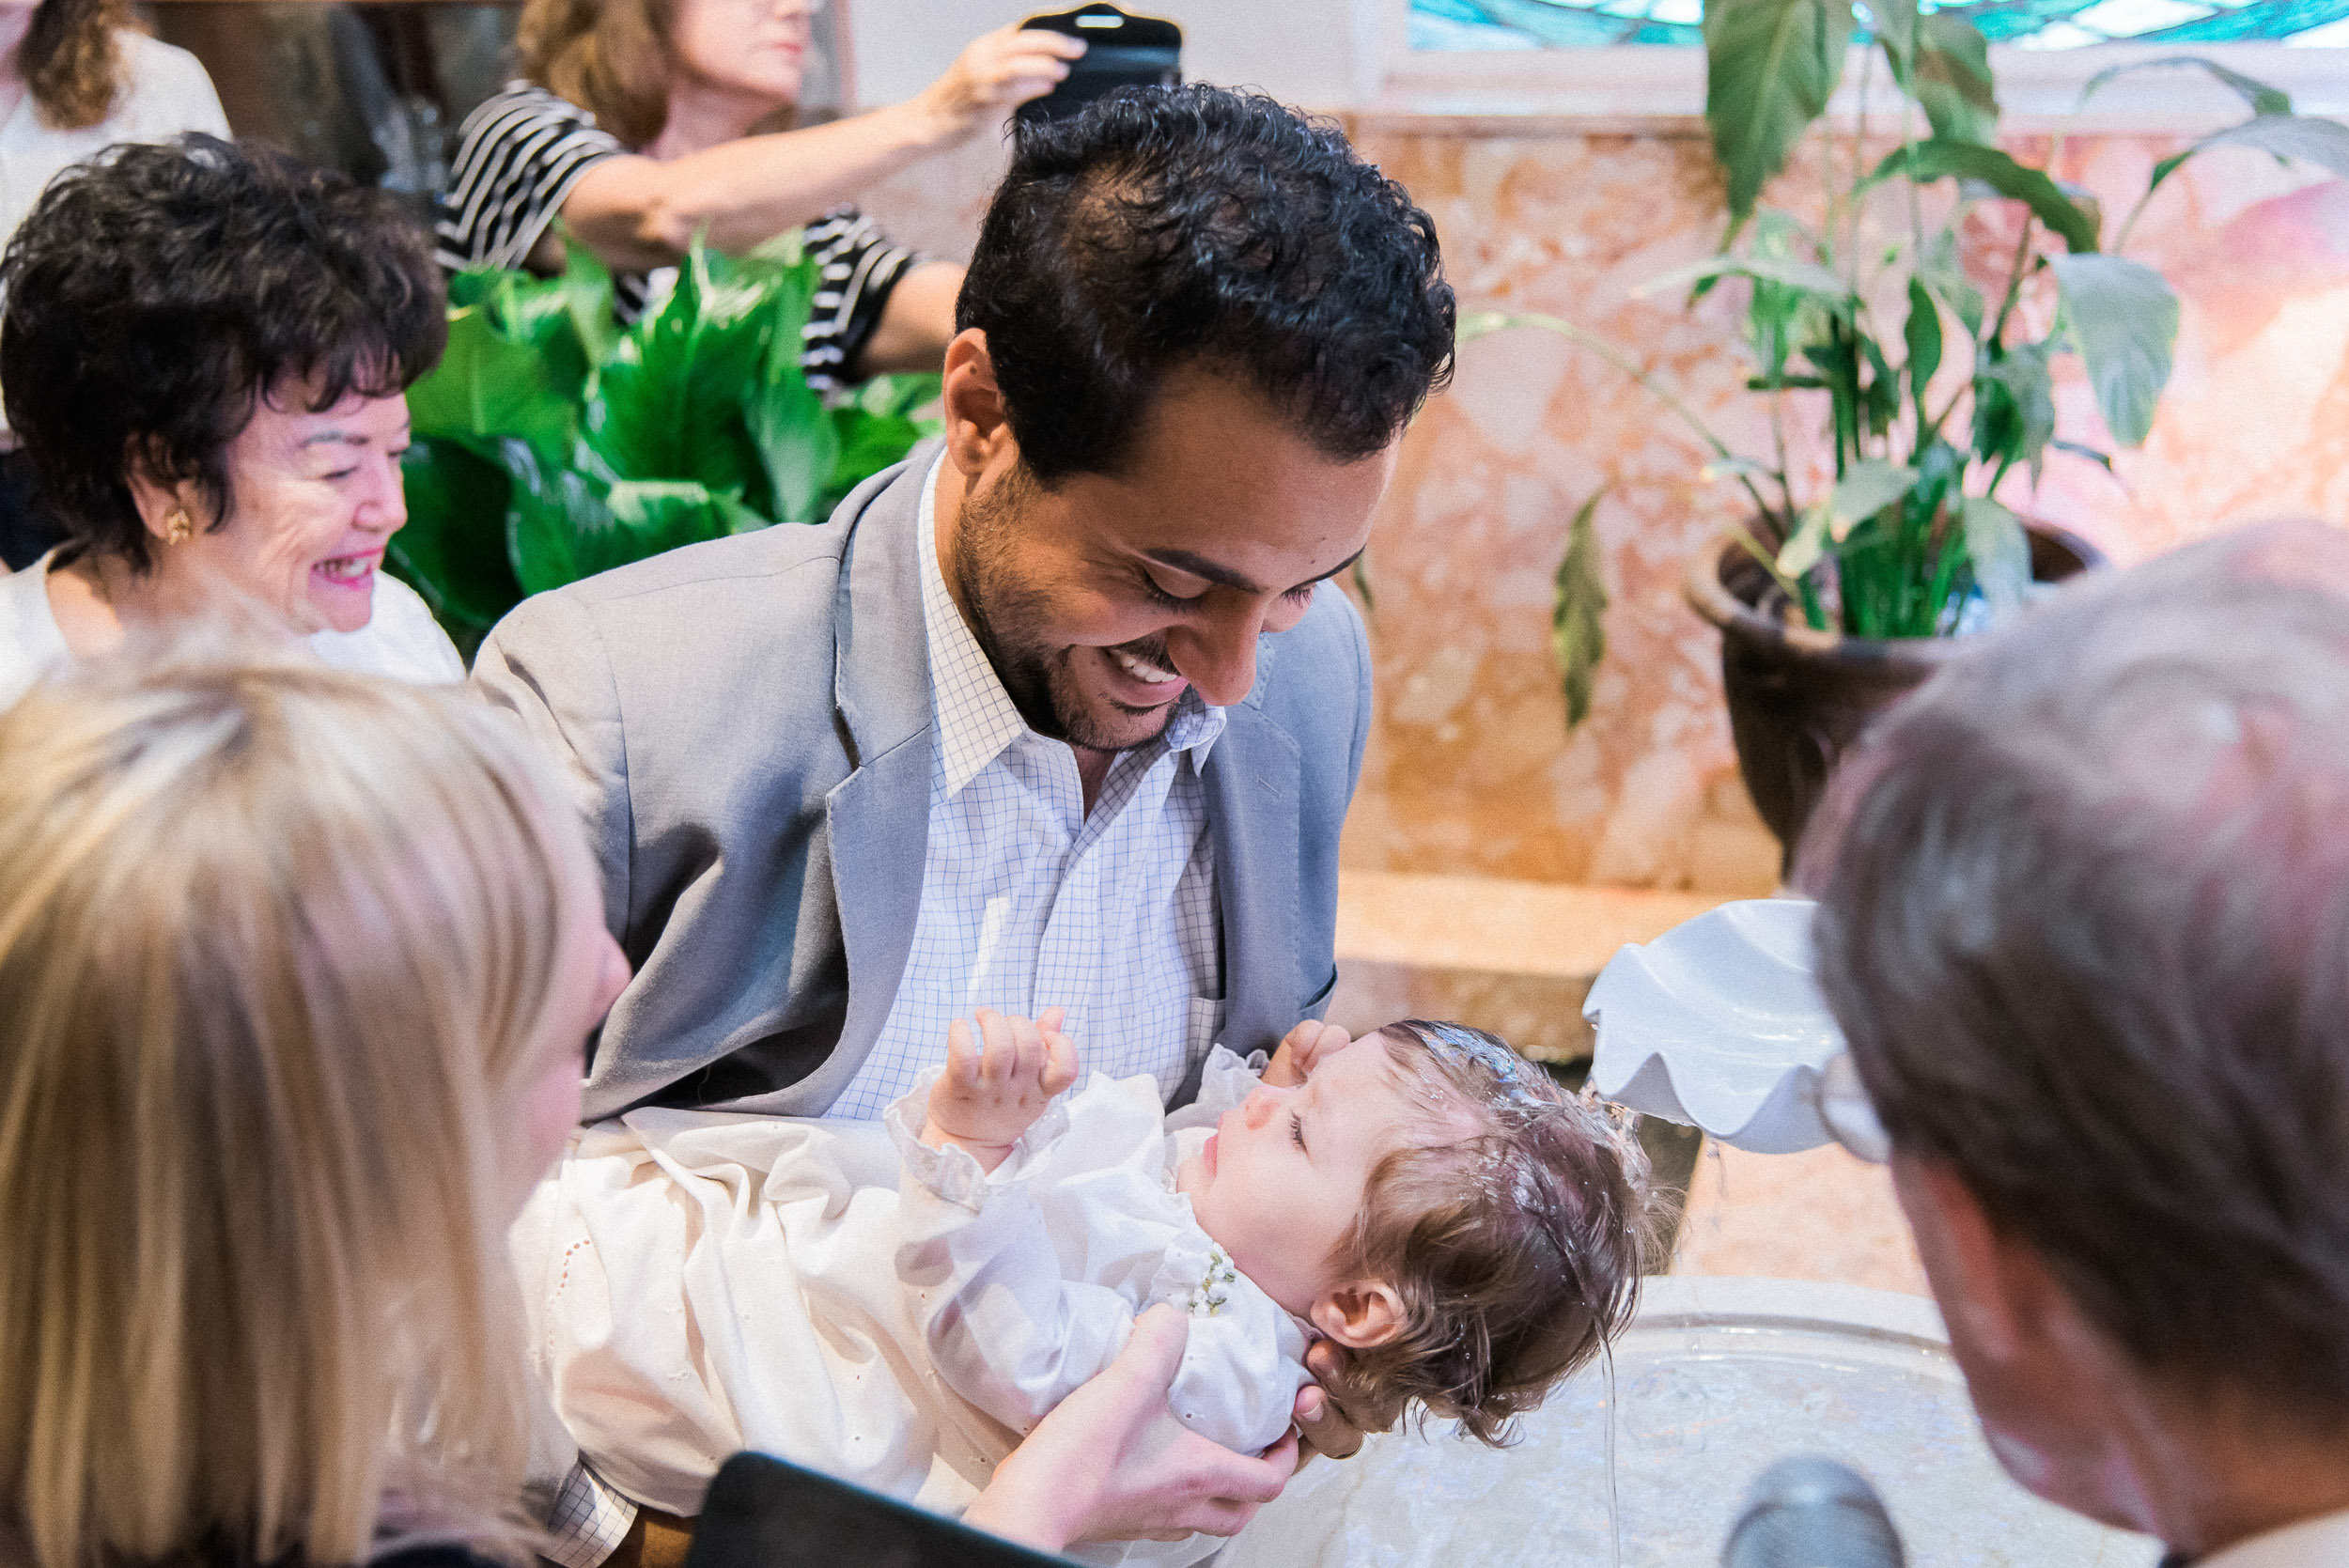 Bryan-Miraflor-Photography-Our-Lady-of-Grace-Neave-Baptism-20161009-0107.jpg